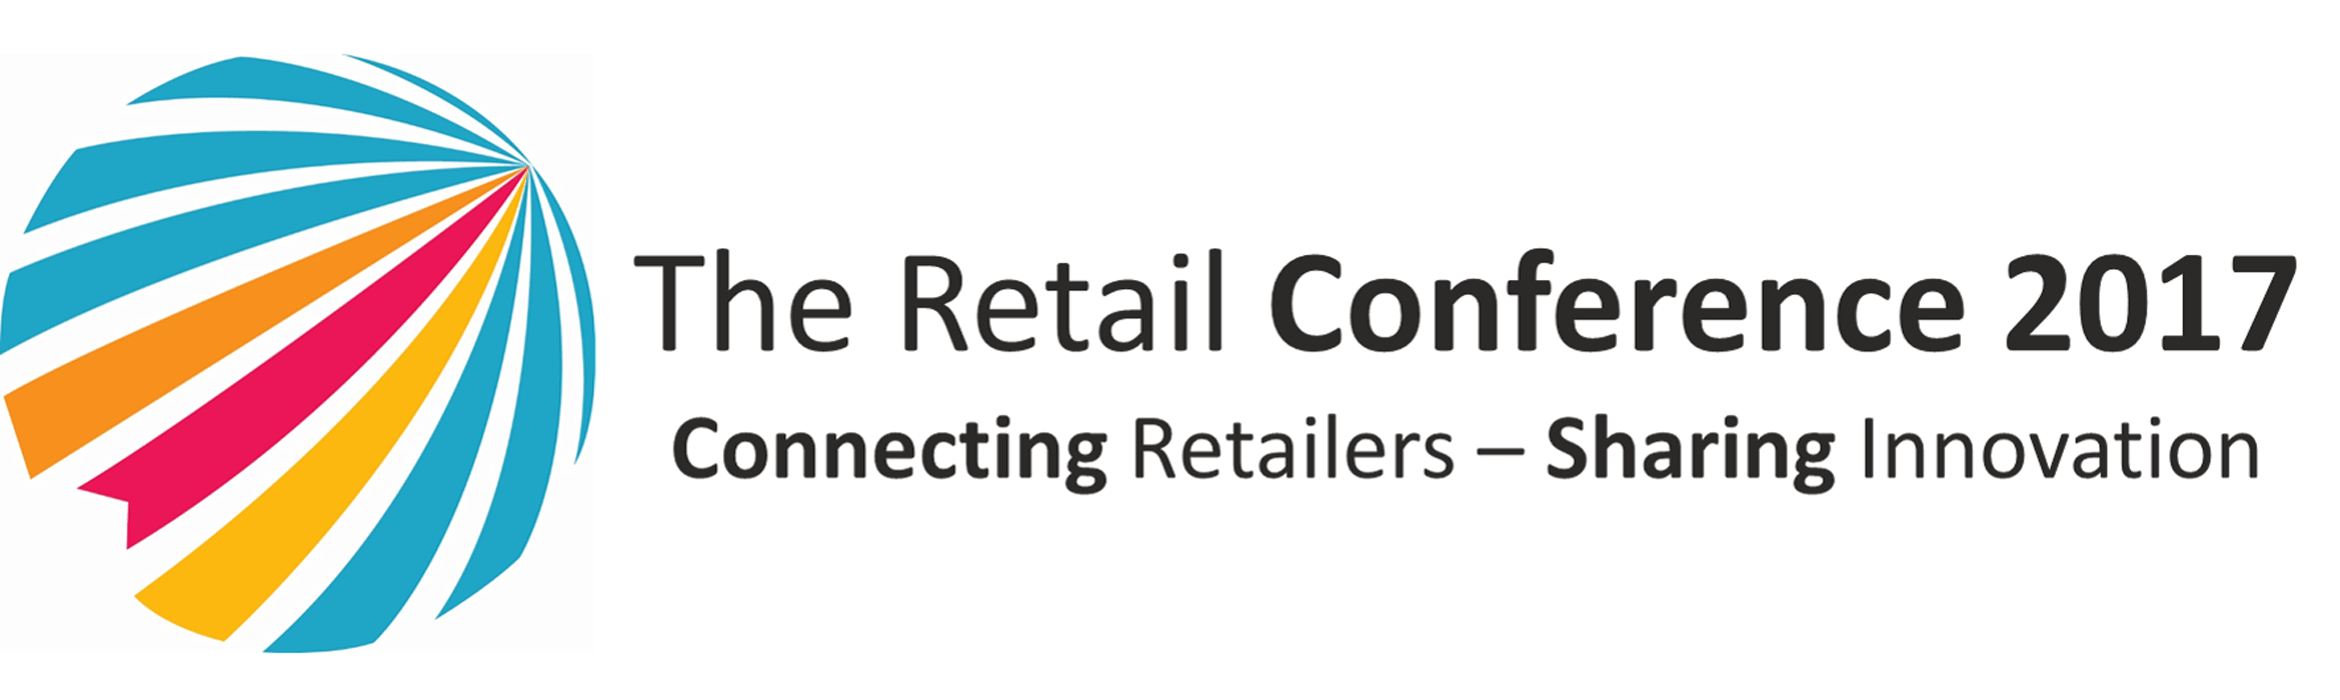 Brother's Guide to Retail Tech Events: The Retail Conference